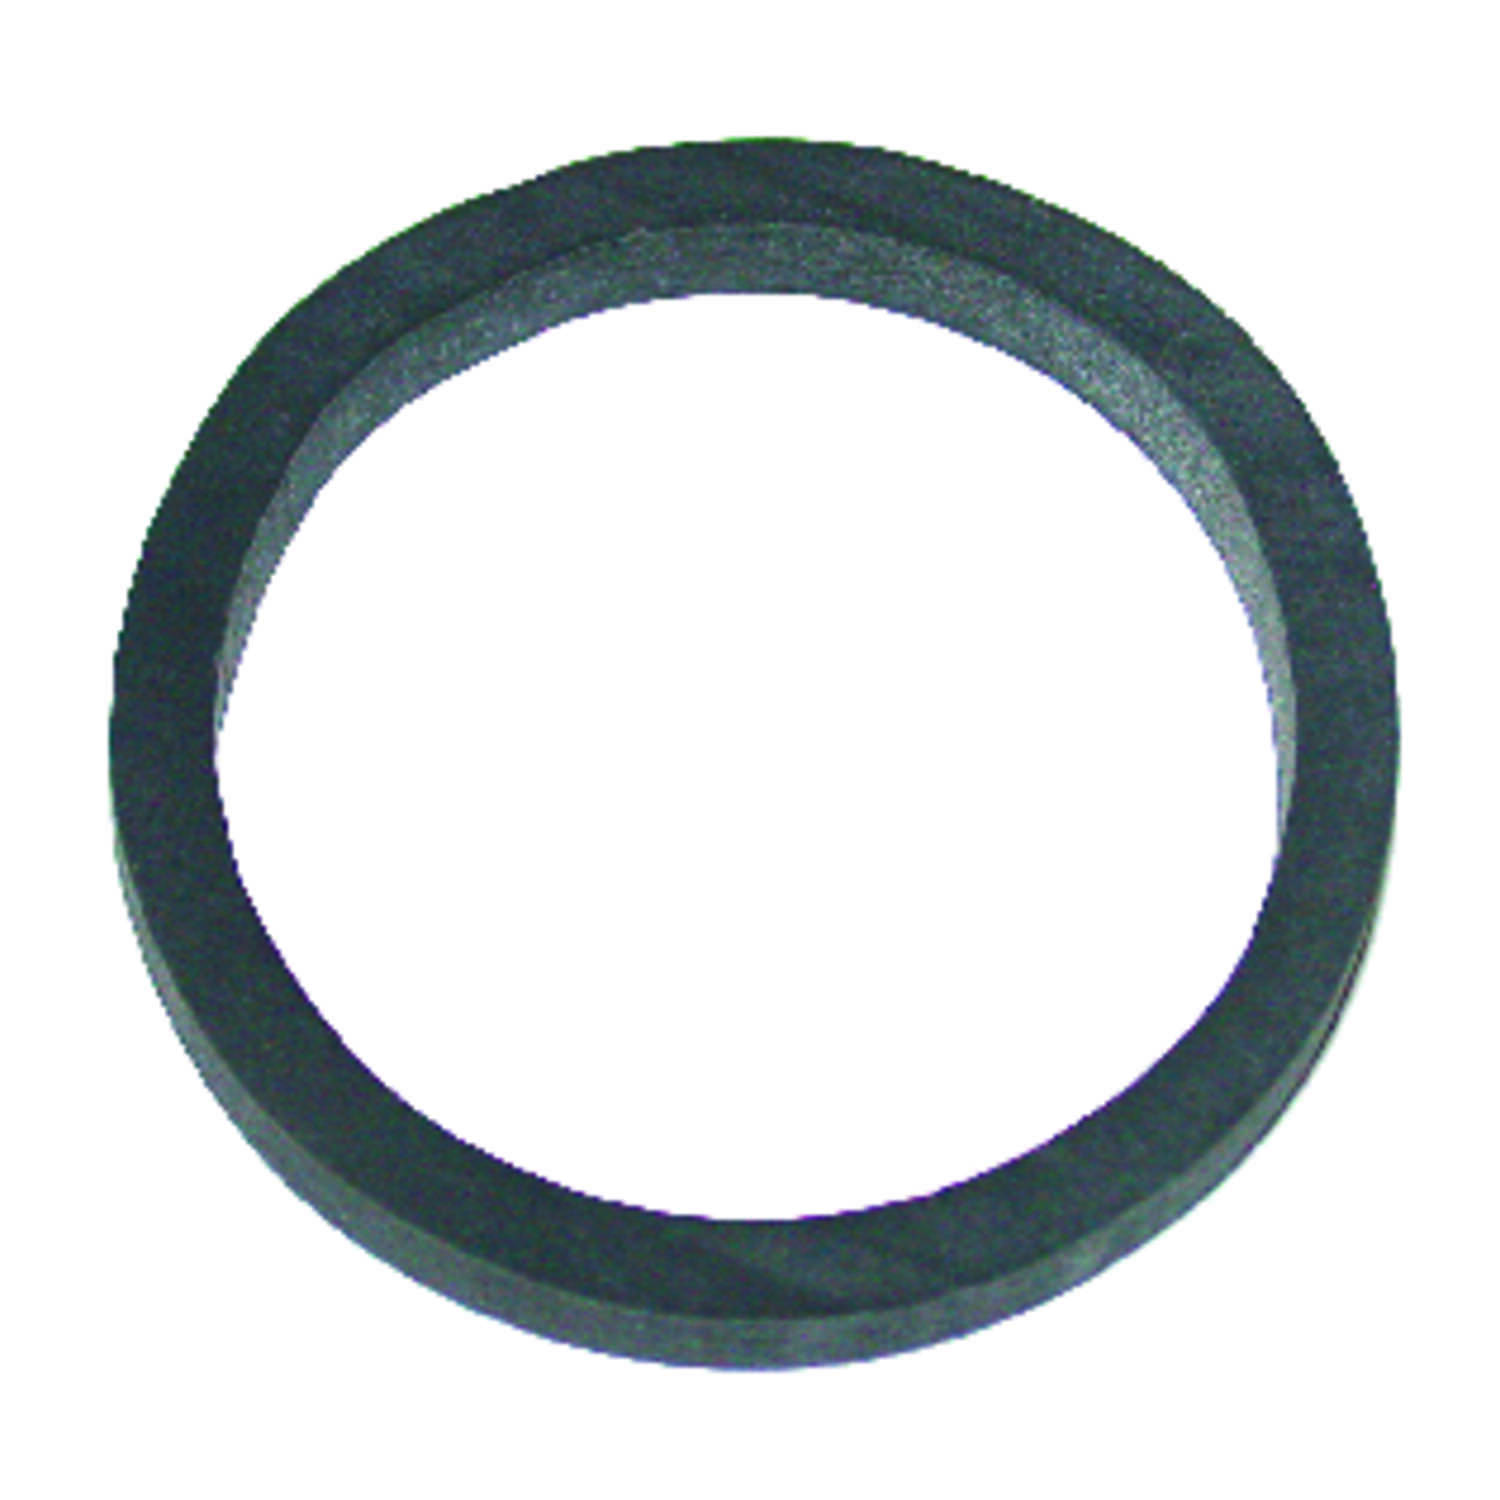 Ace  1-1/4 in. Dia. Rubber  Slip Joint Washer  2